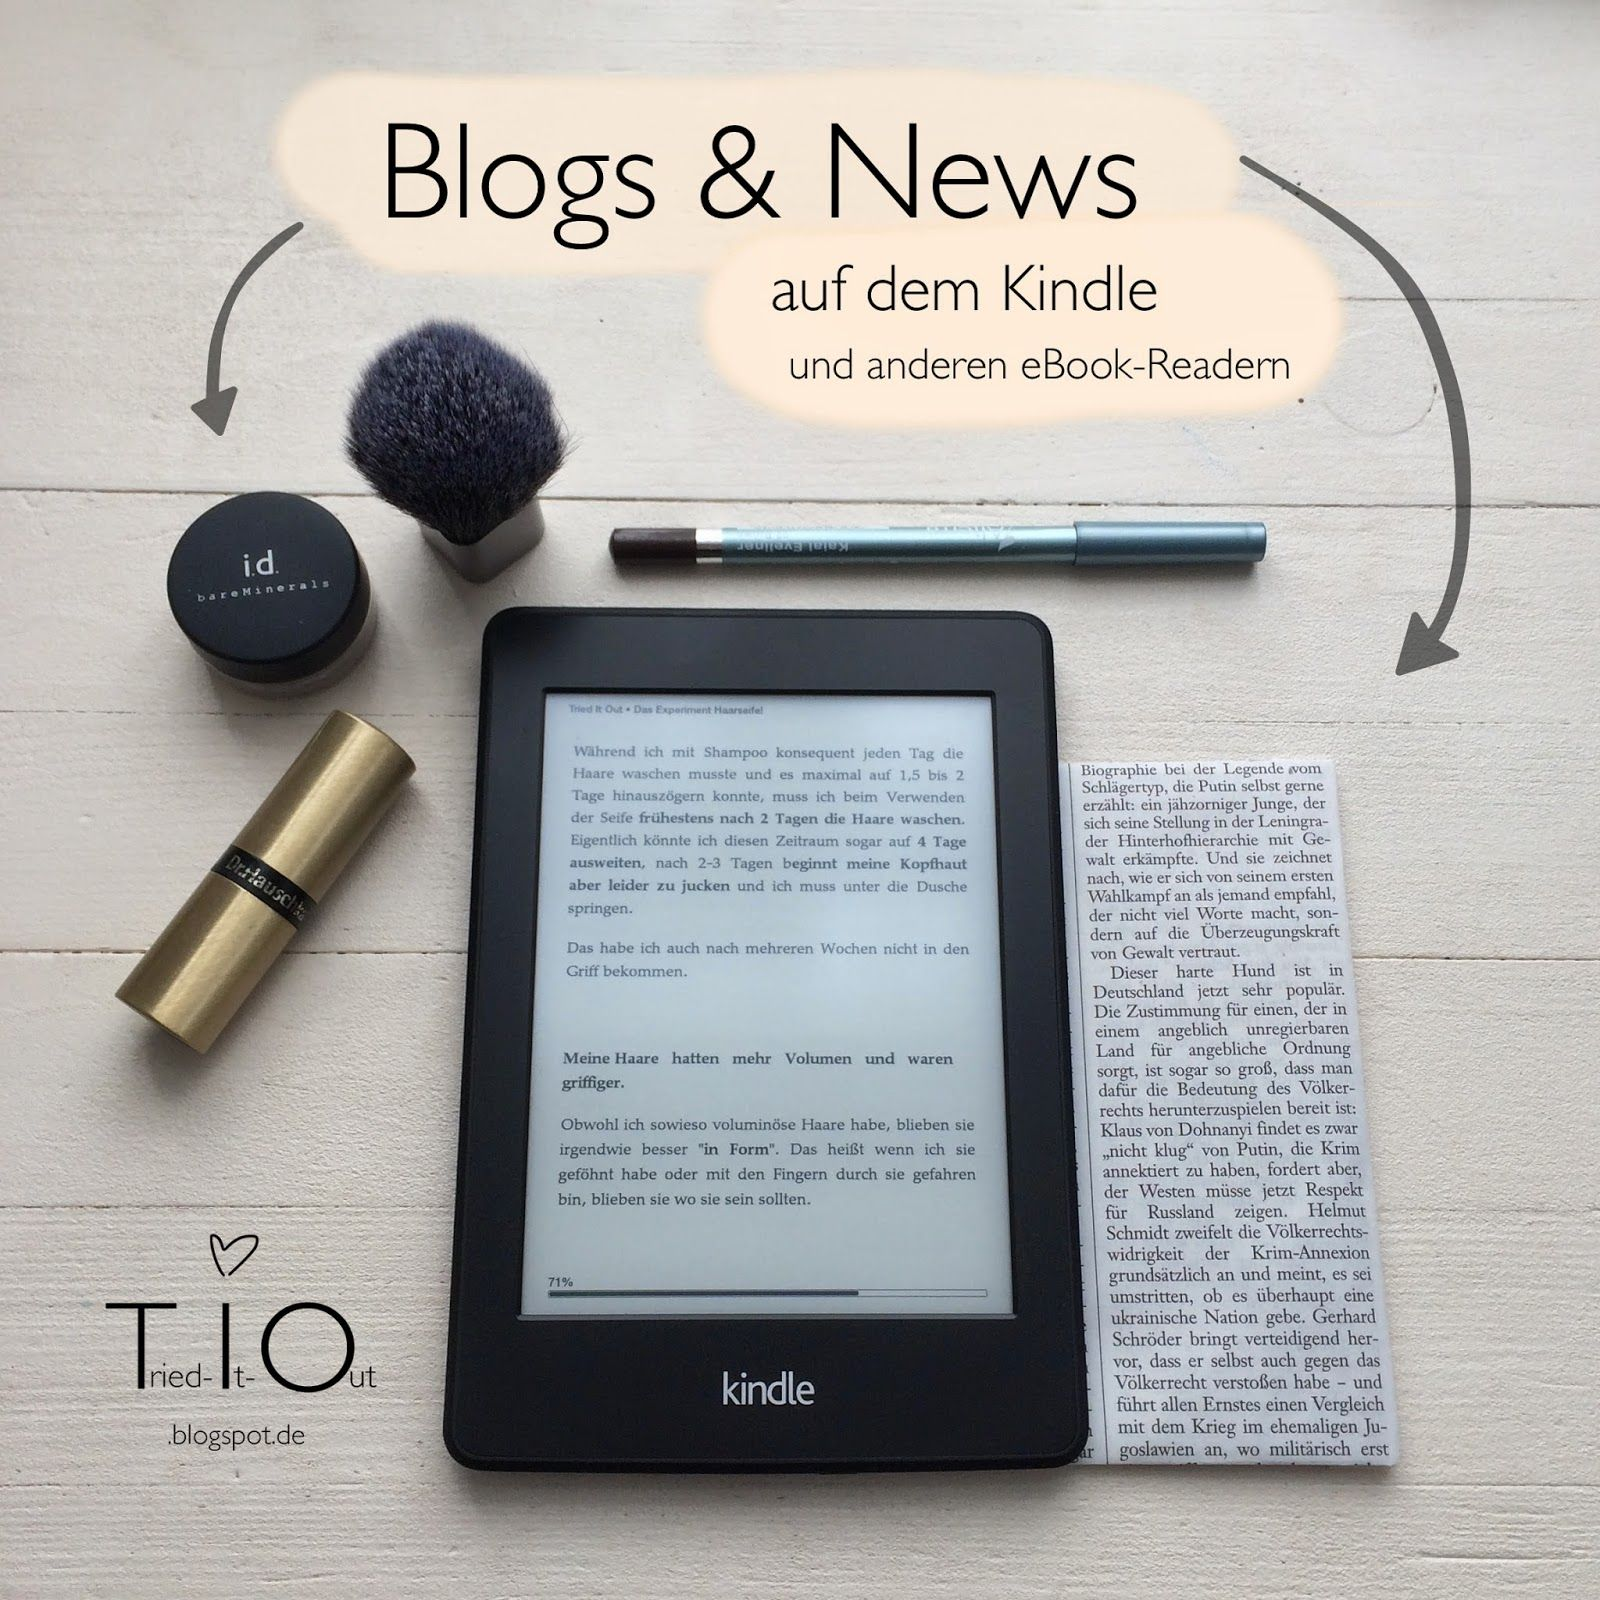 Blogs & News auf dem Kindle und anderen eBook-Readern!  How to receive daily news and blogs on e-readers like the kindle paperwhite! :)